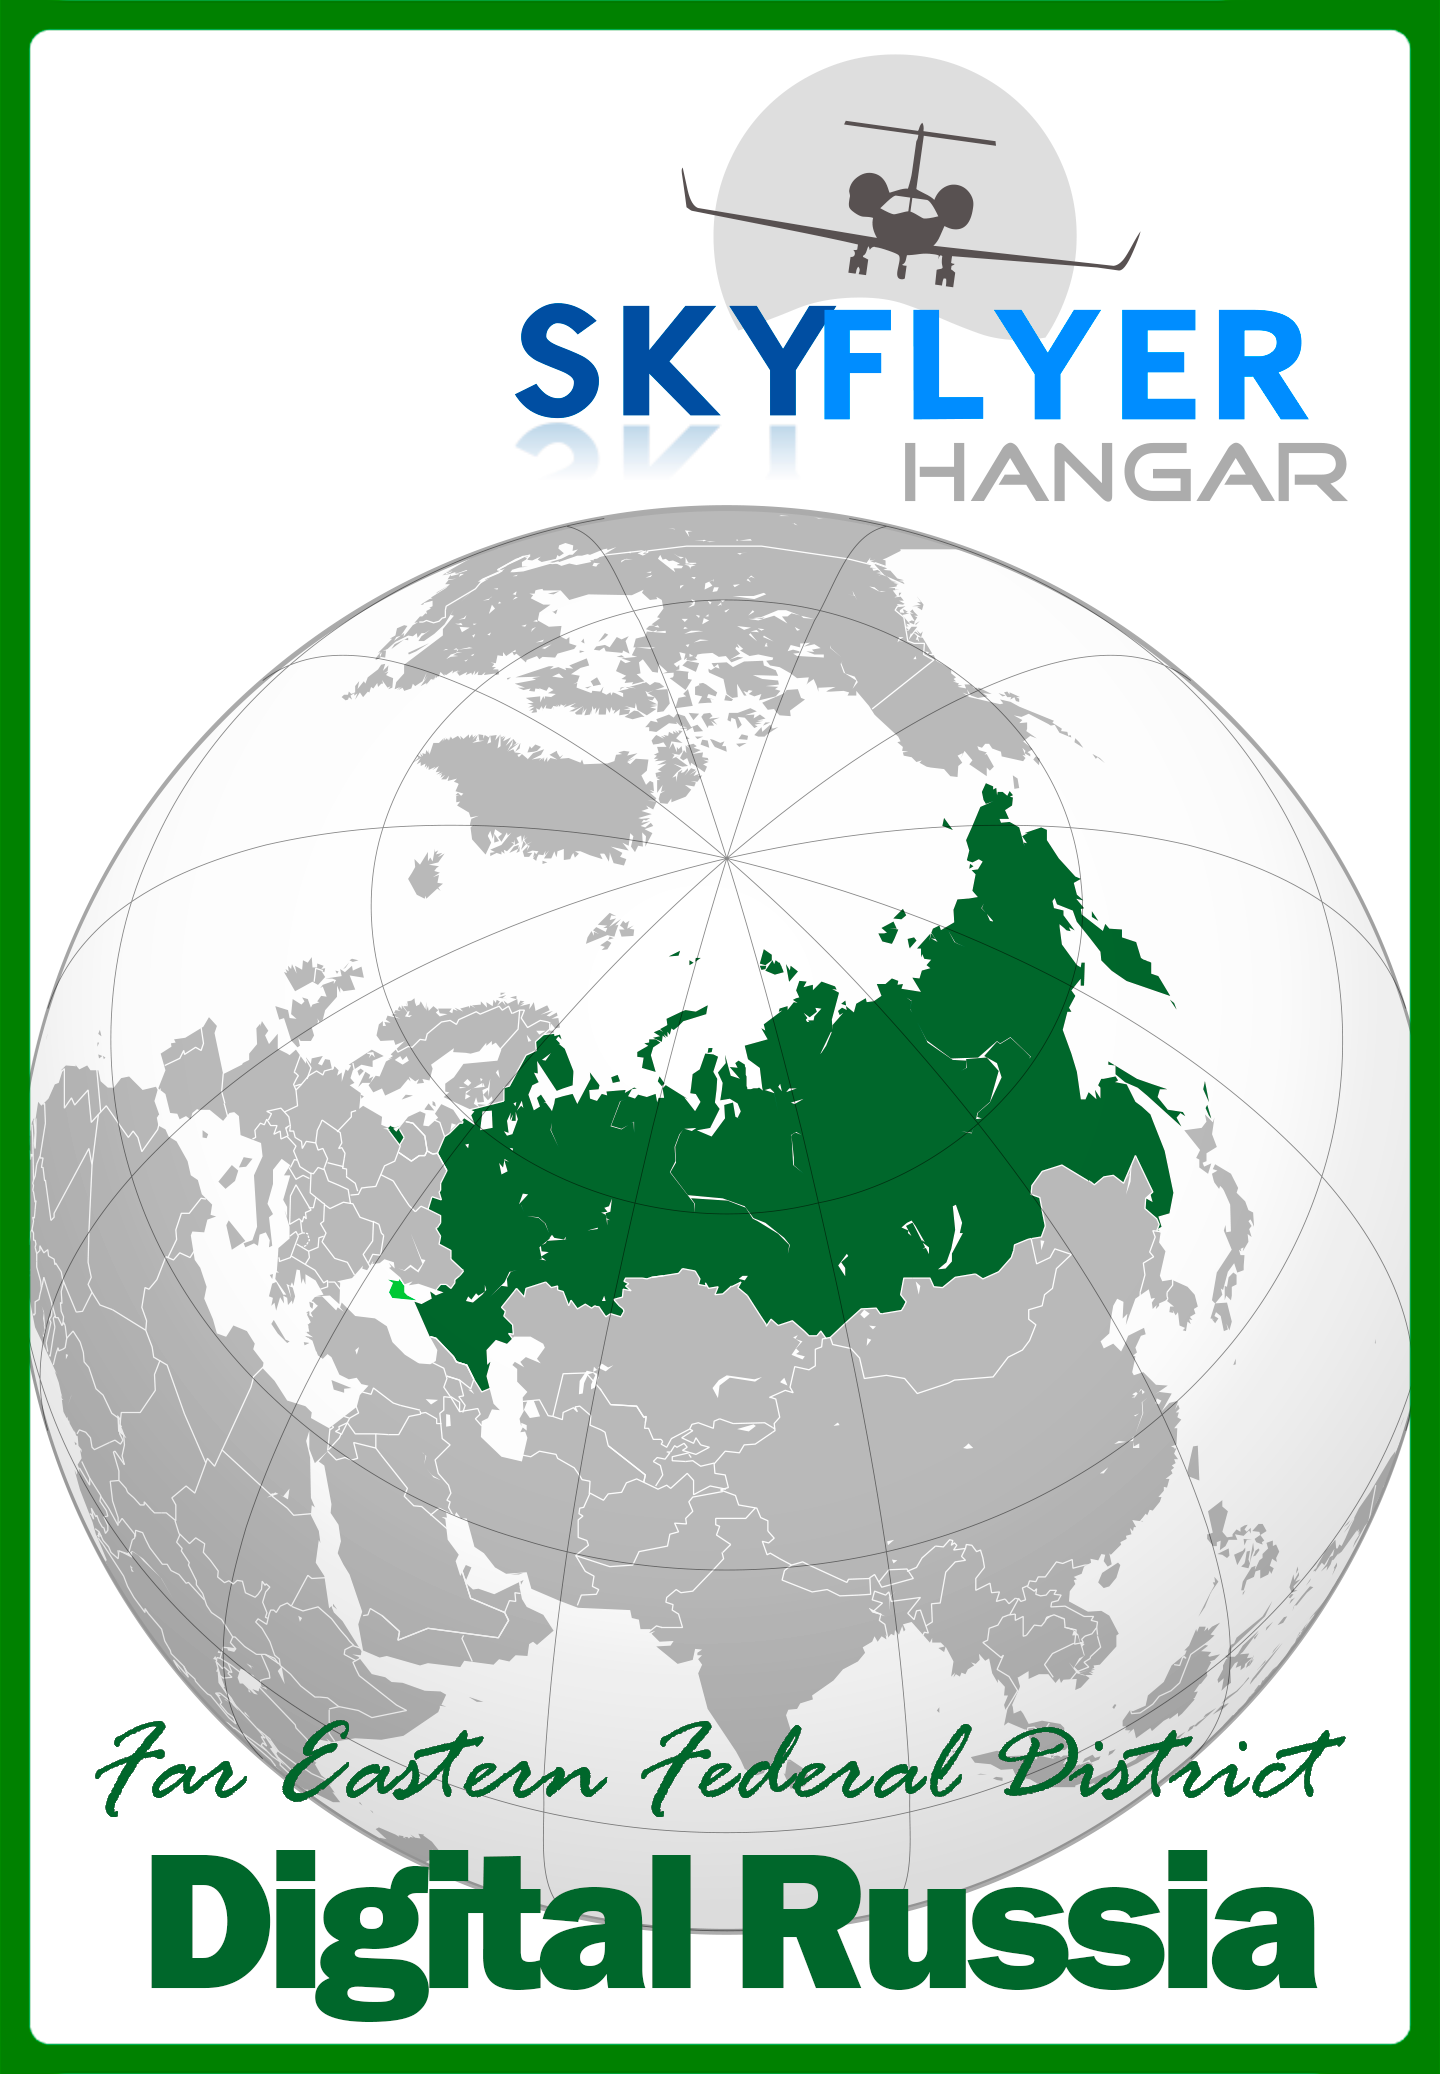 SKY FLYER HANGAR - DIGITAL RUSSIA FAR EASTERN FEDERAL DISTRICT P3D